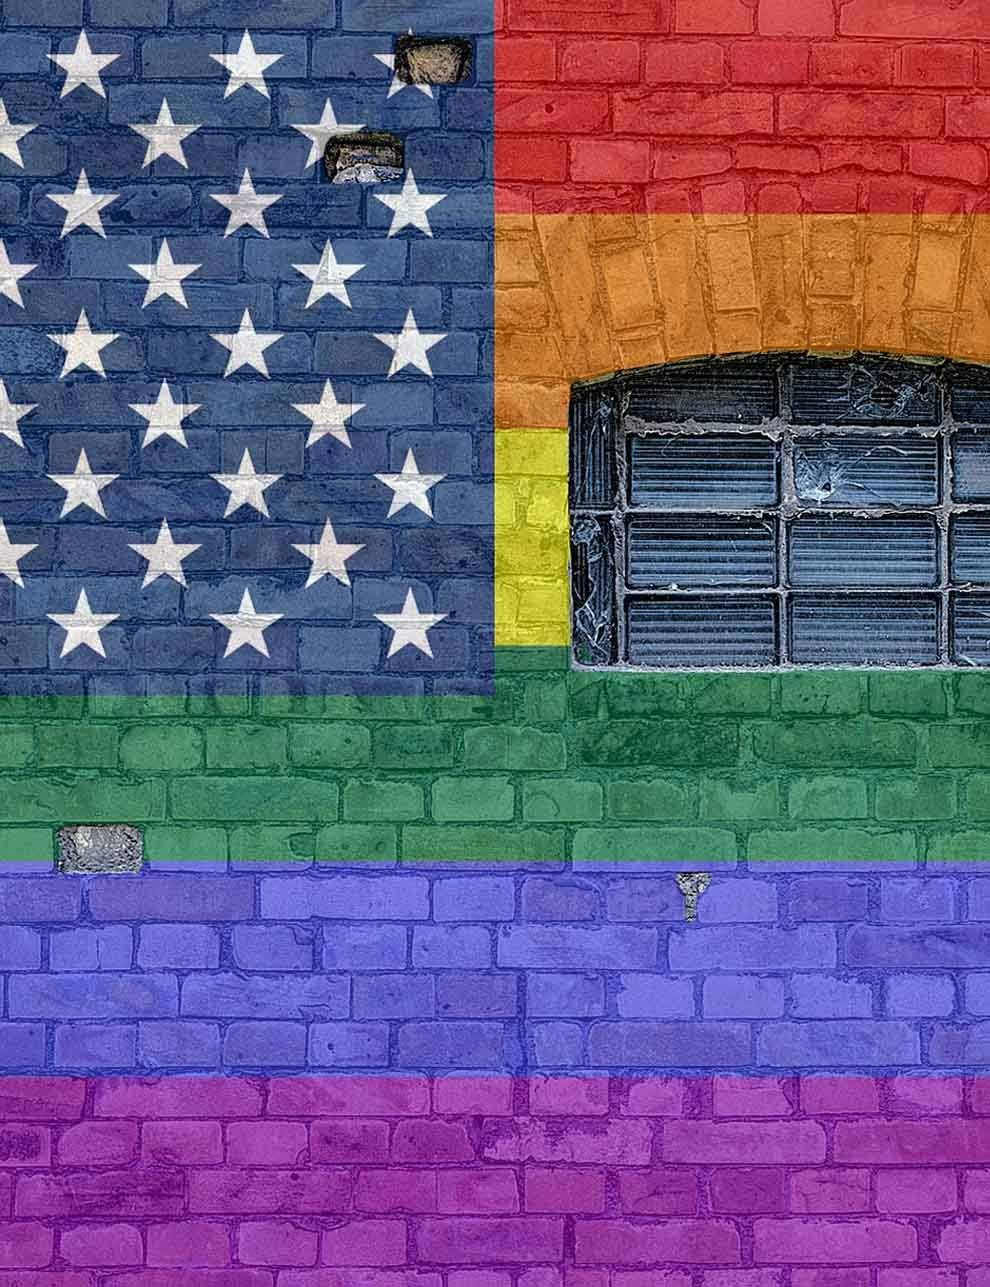 Colorful Brick Wall American Flag Arch Window Texture Backdrop - Shop Backdrop